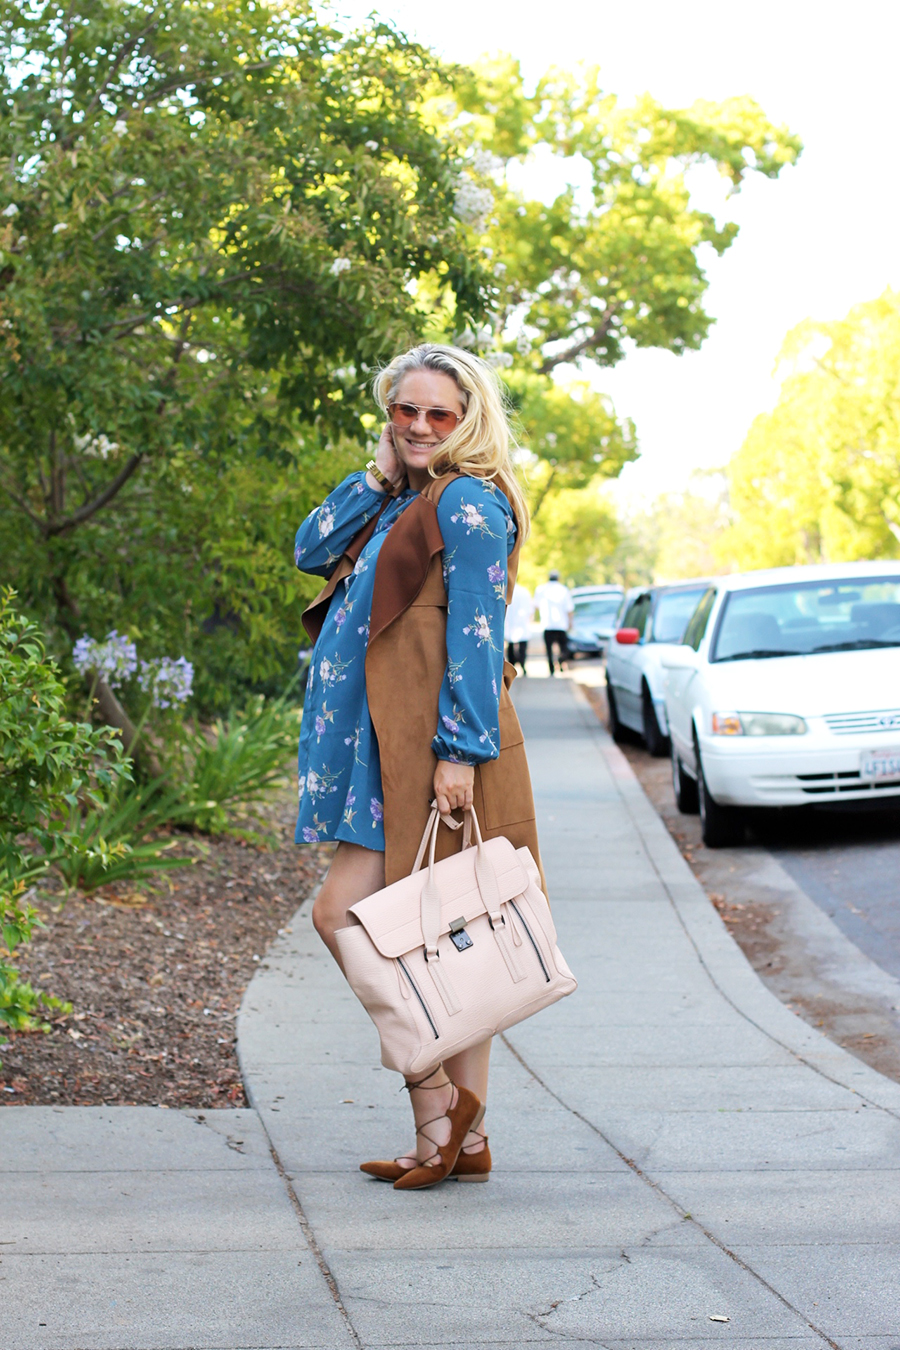 Fall Transition-Nordstrom Anniversary Sale-Maternity Style-Fall Fashion-Have Need Want 7